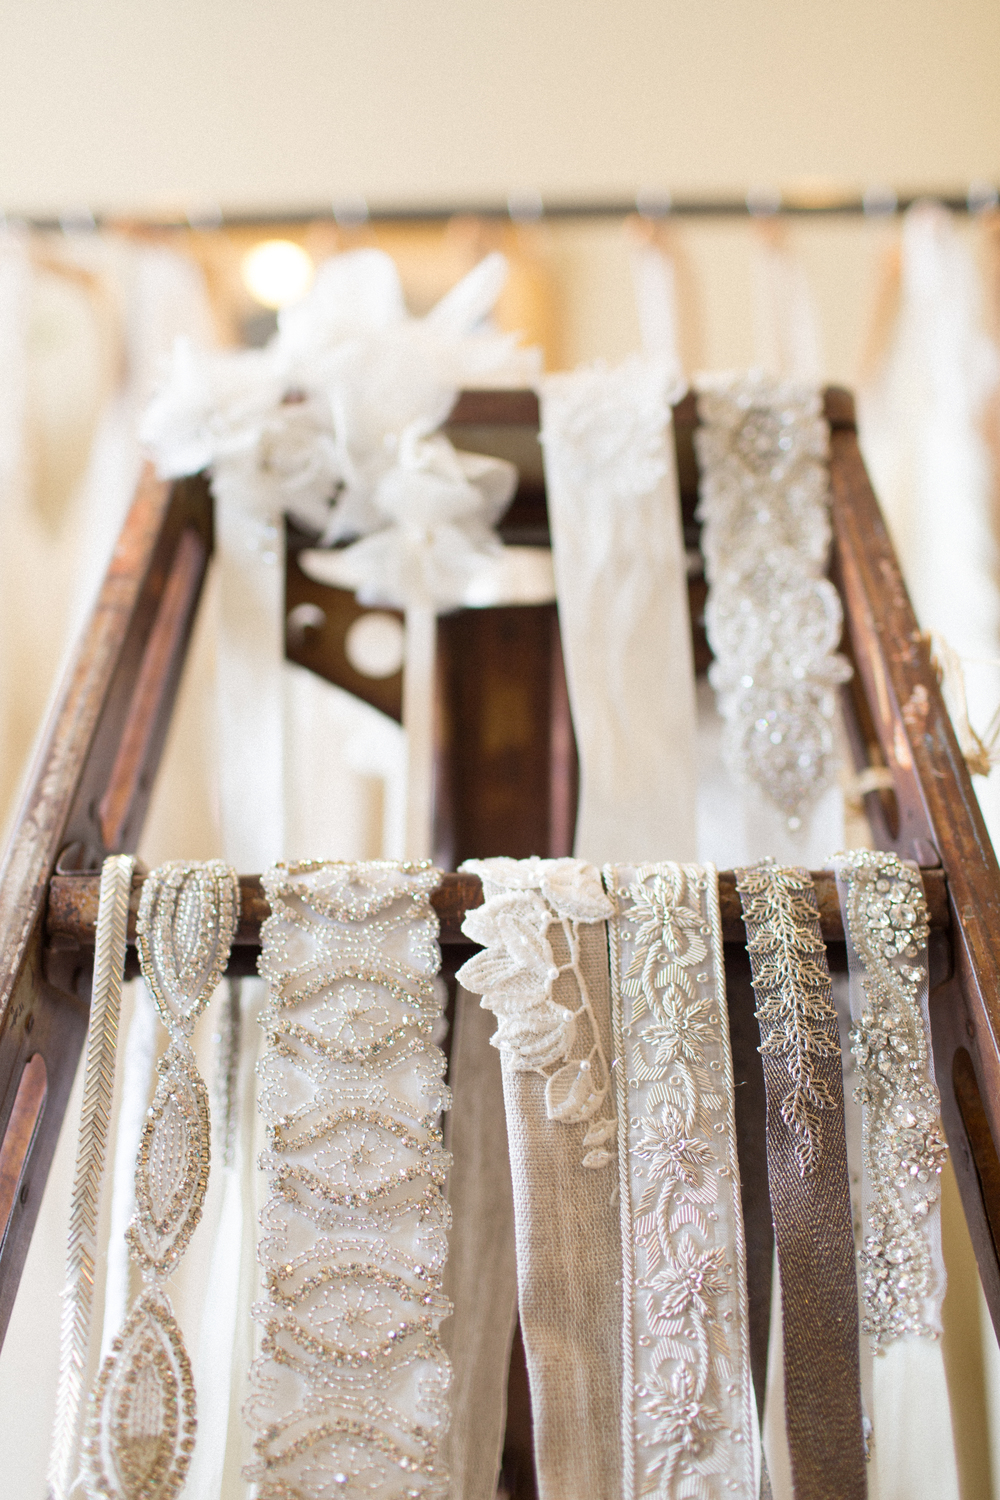 obsessed with these sashes! image by Honey Bee Photography